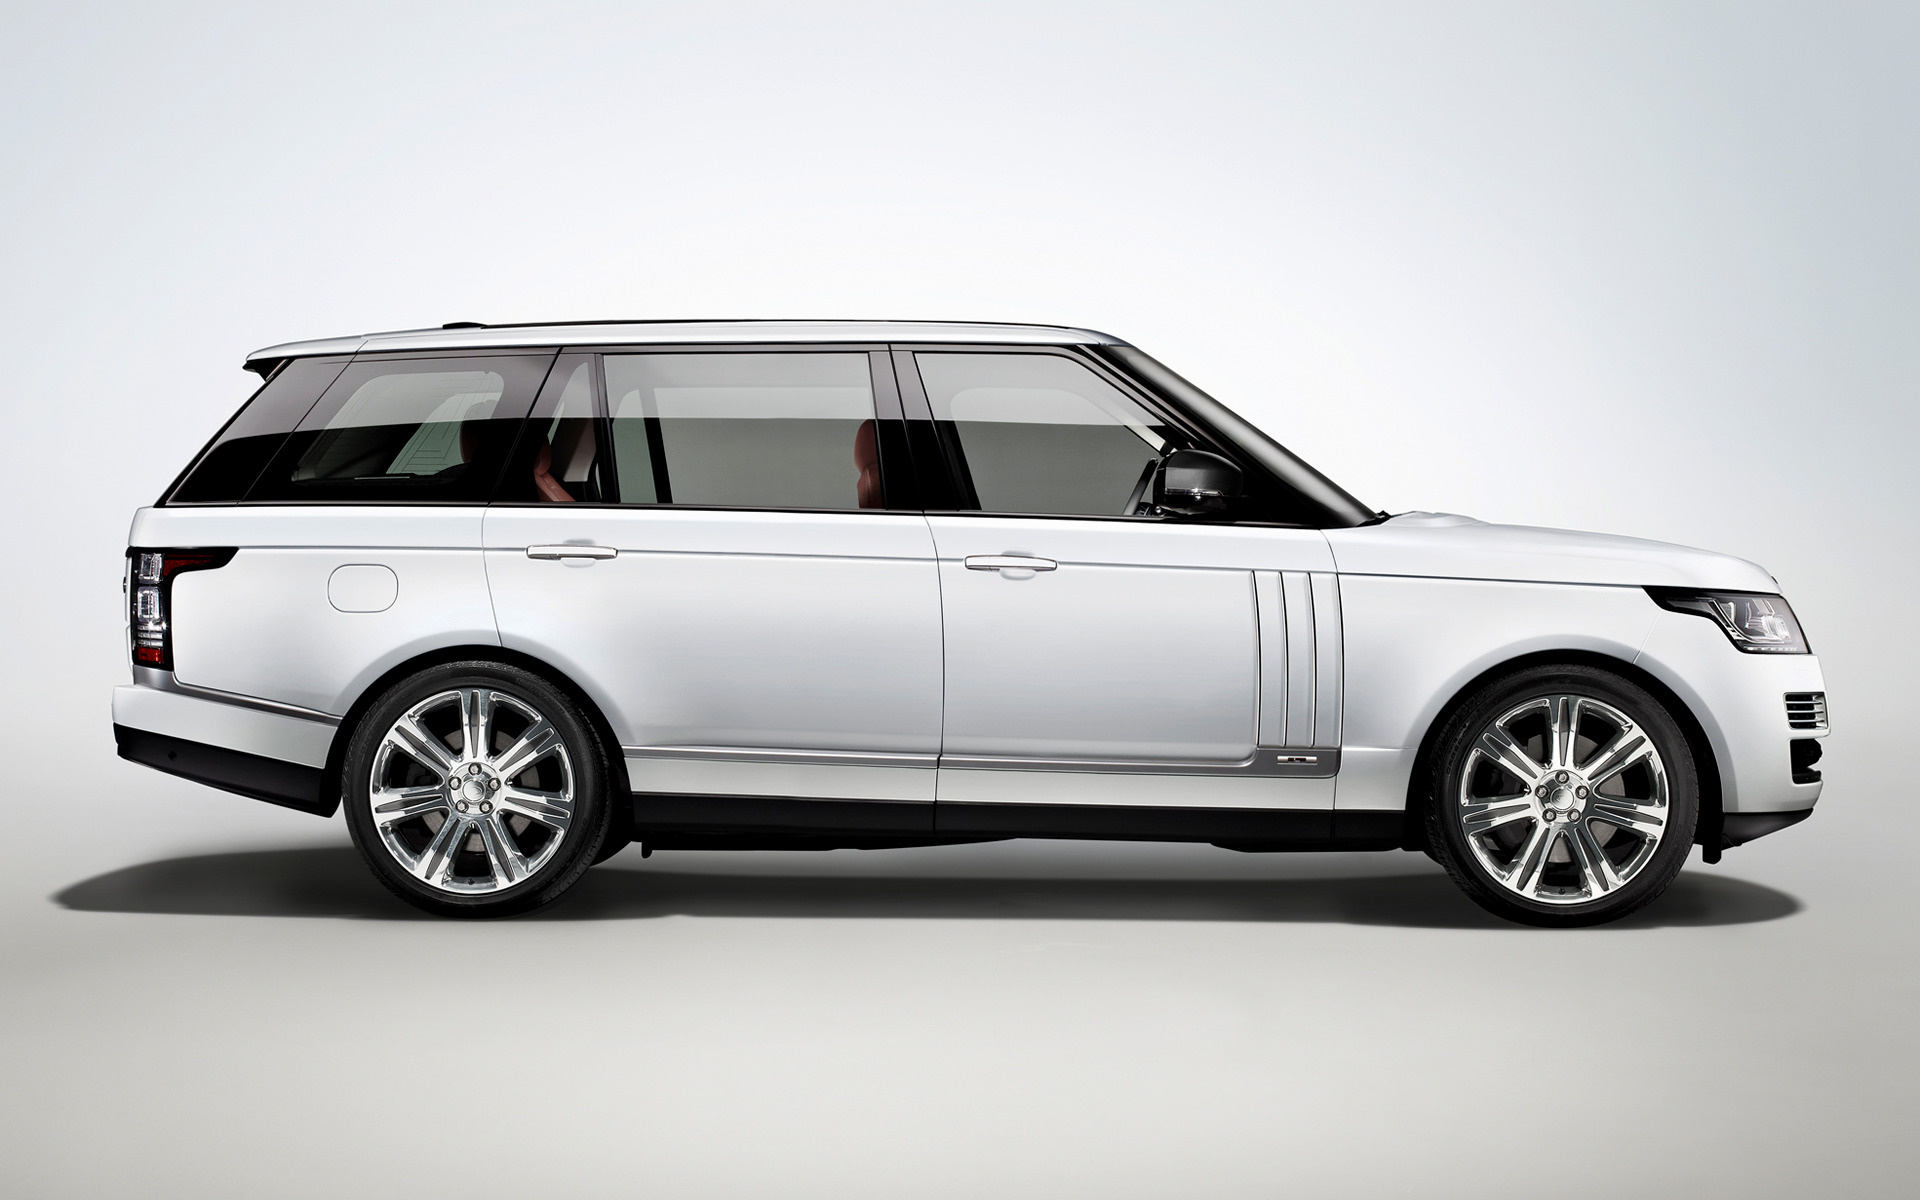 Range Rover Autobiography Black Lwb 2014 Wallpapers